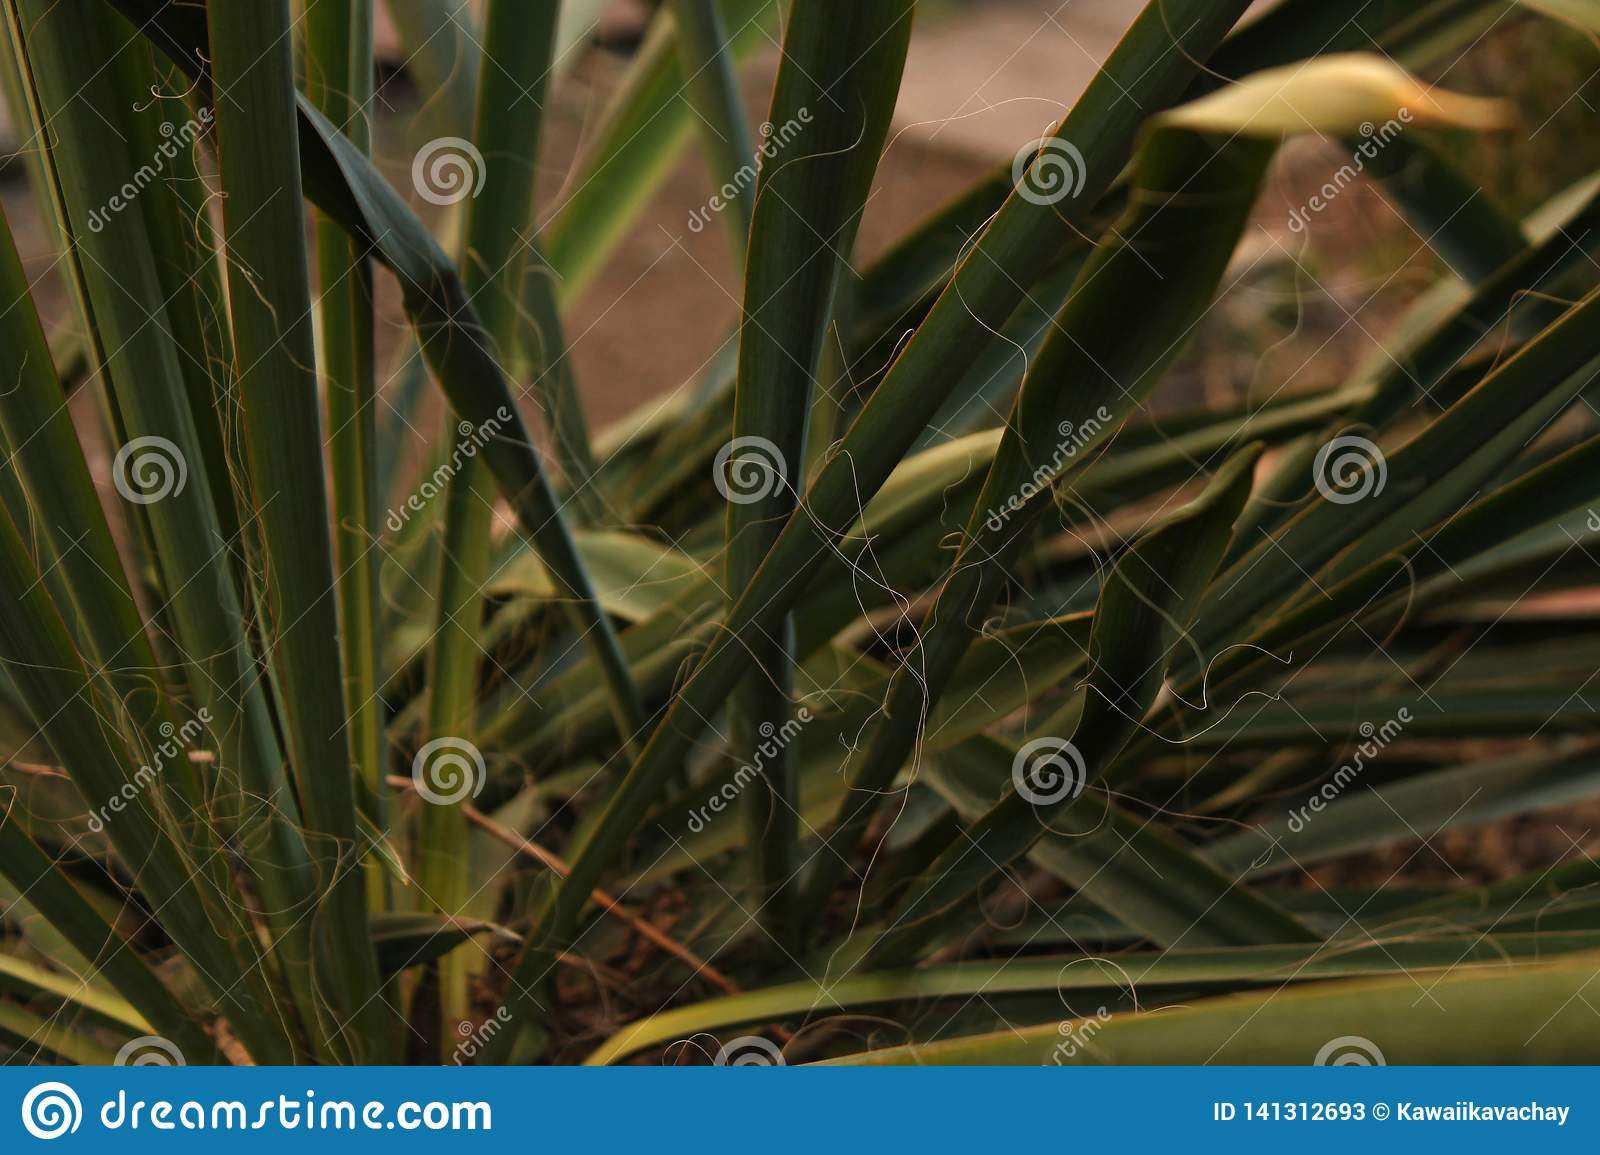 Green Yucca plant leaves grows on a bed in the yard